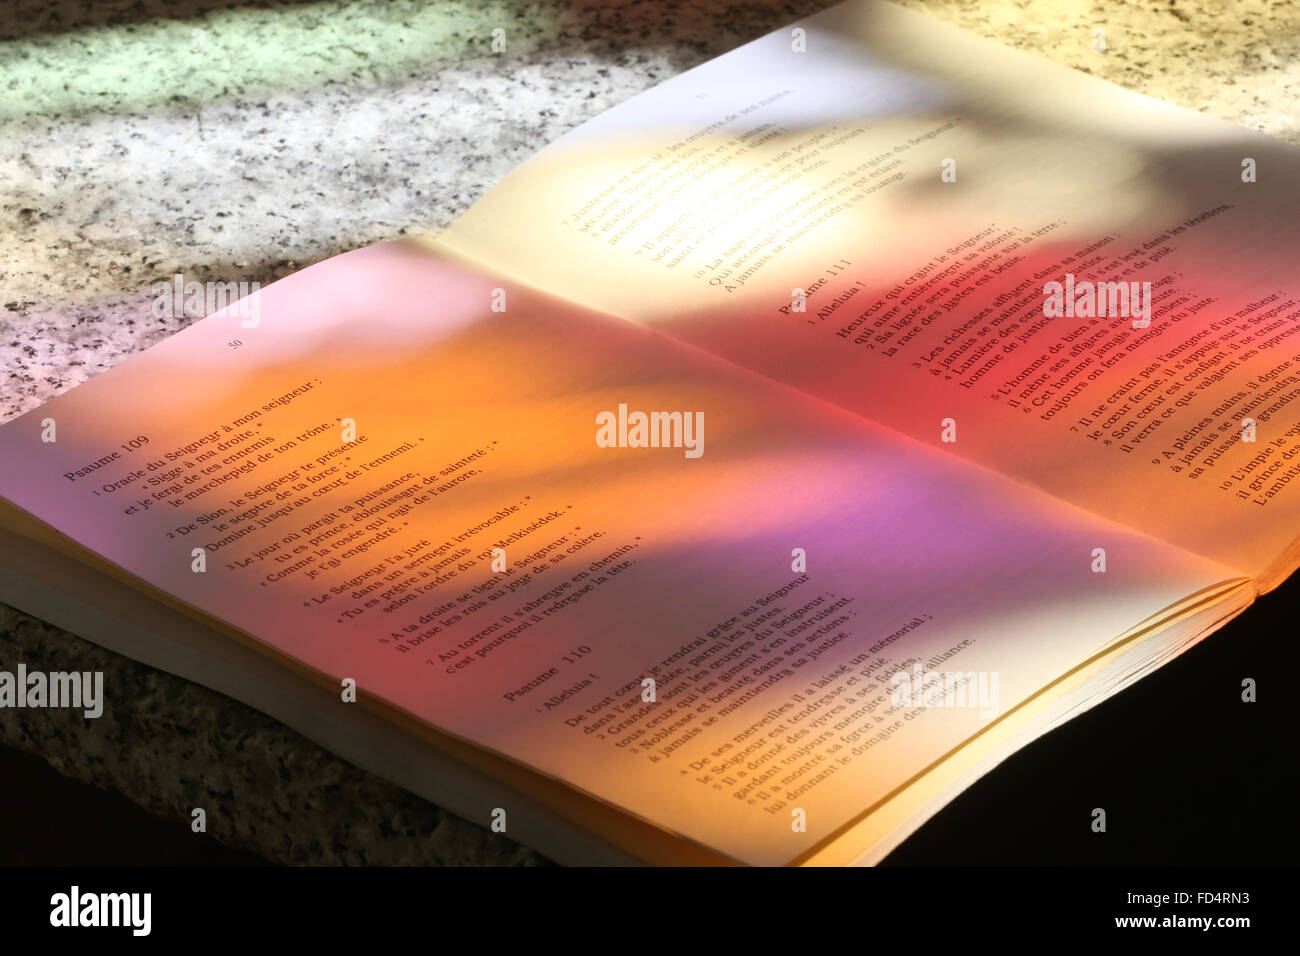 The Book of Psalms. Stock Photo